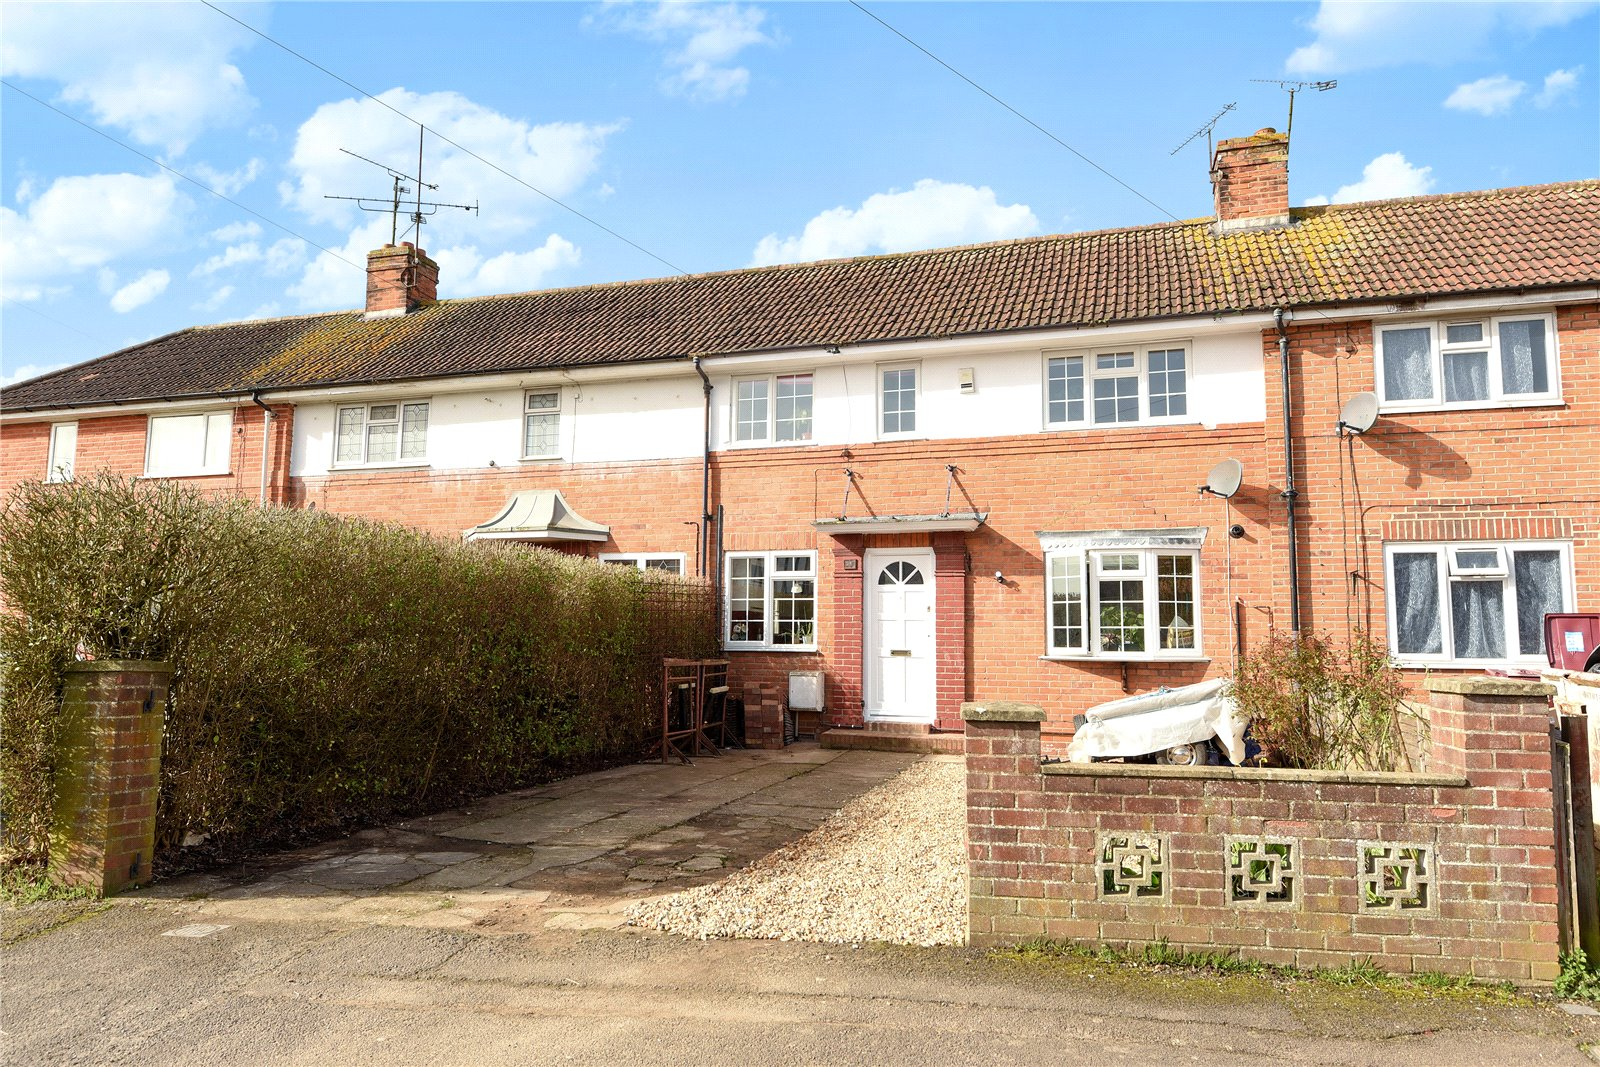 3 Bedrooms Terraced House for sale in Kingsbridge Road, Reading, Berkshire, RG2